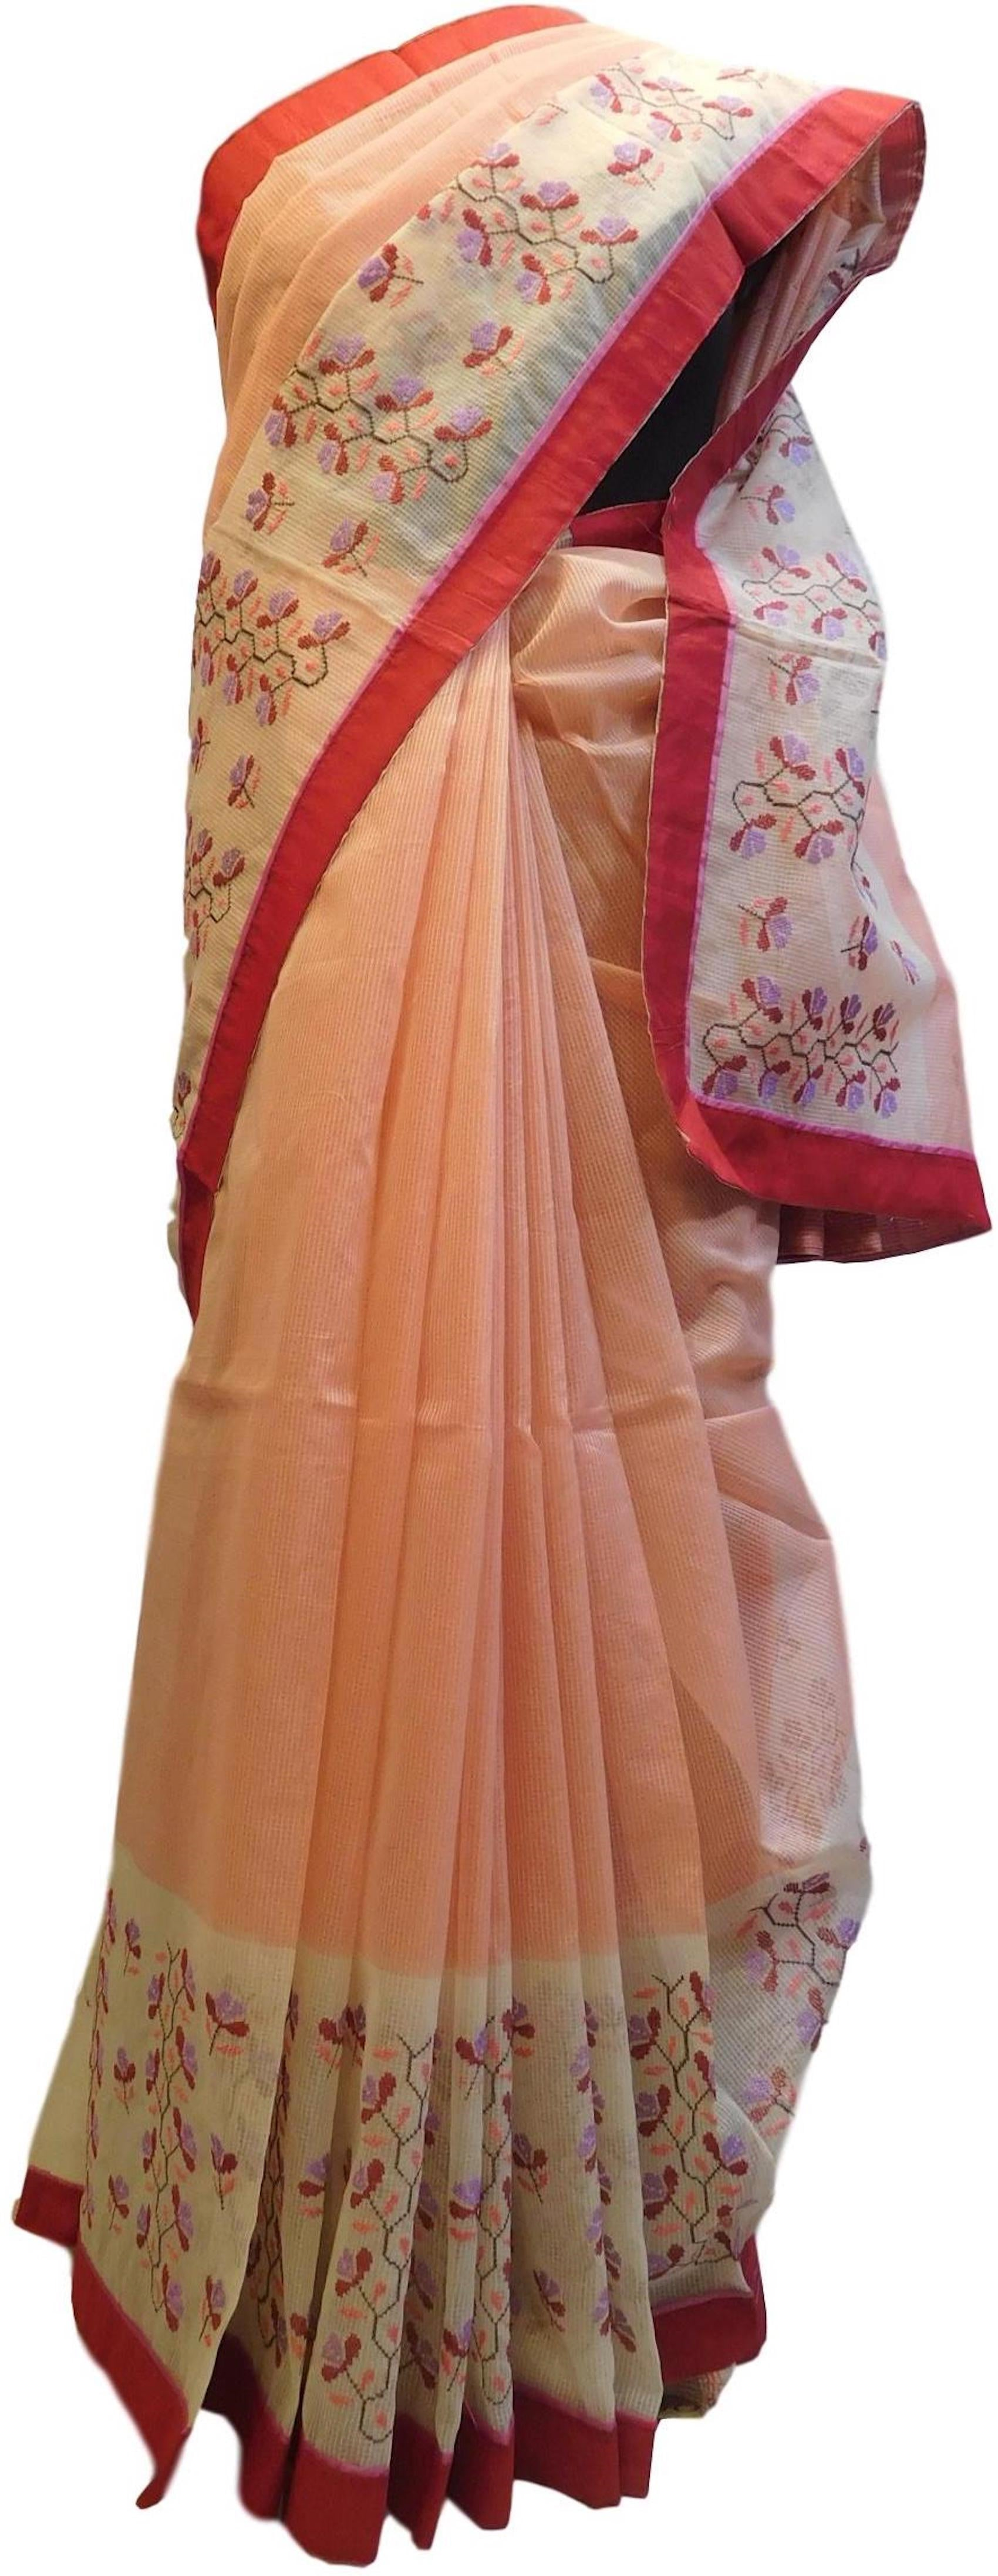 Peach & Cream Designer PartyWear Pure Supernet (Cotton) Thread Work Saree Sari With Red Border E218